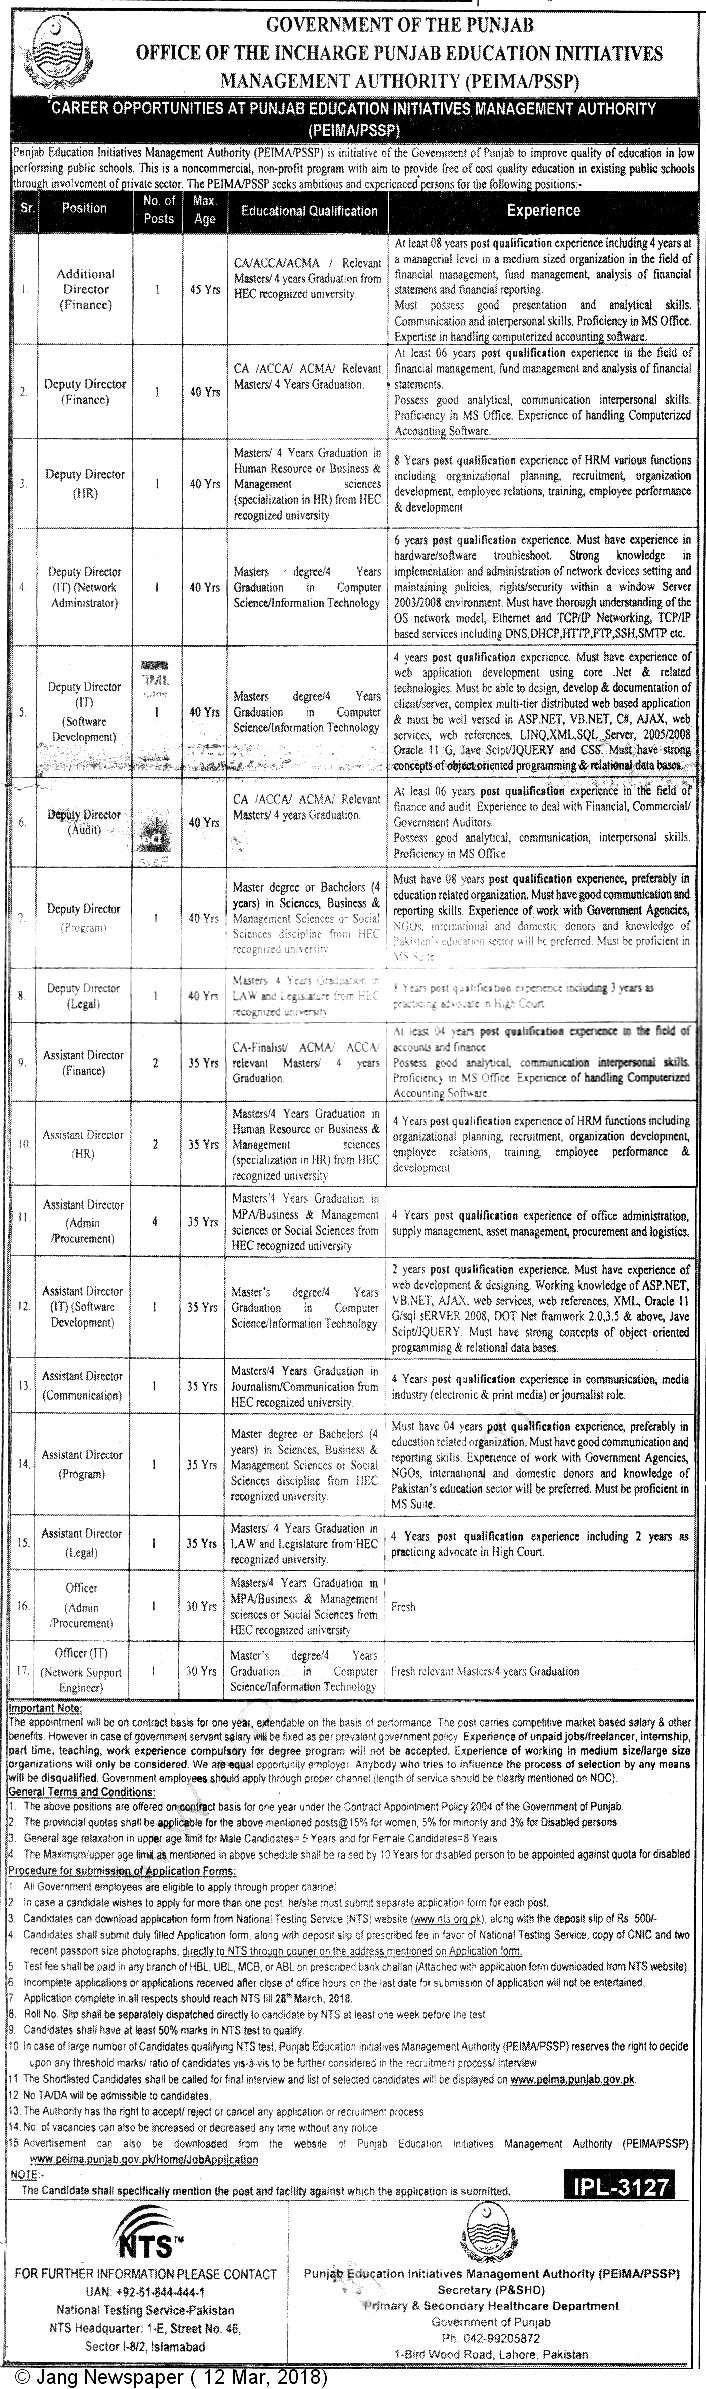 Punjab Education Initiatives Management Authority PEIMA NTS Jobs Roll Number Slips 2018